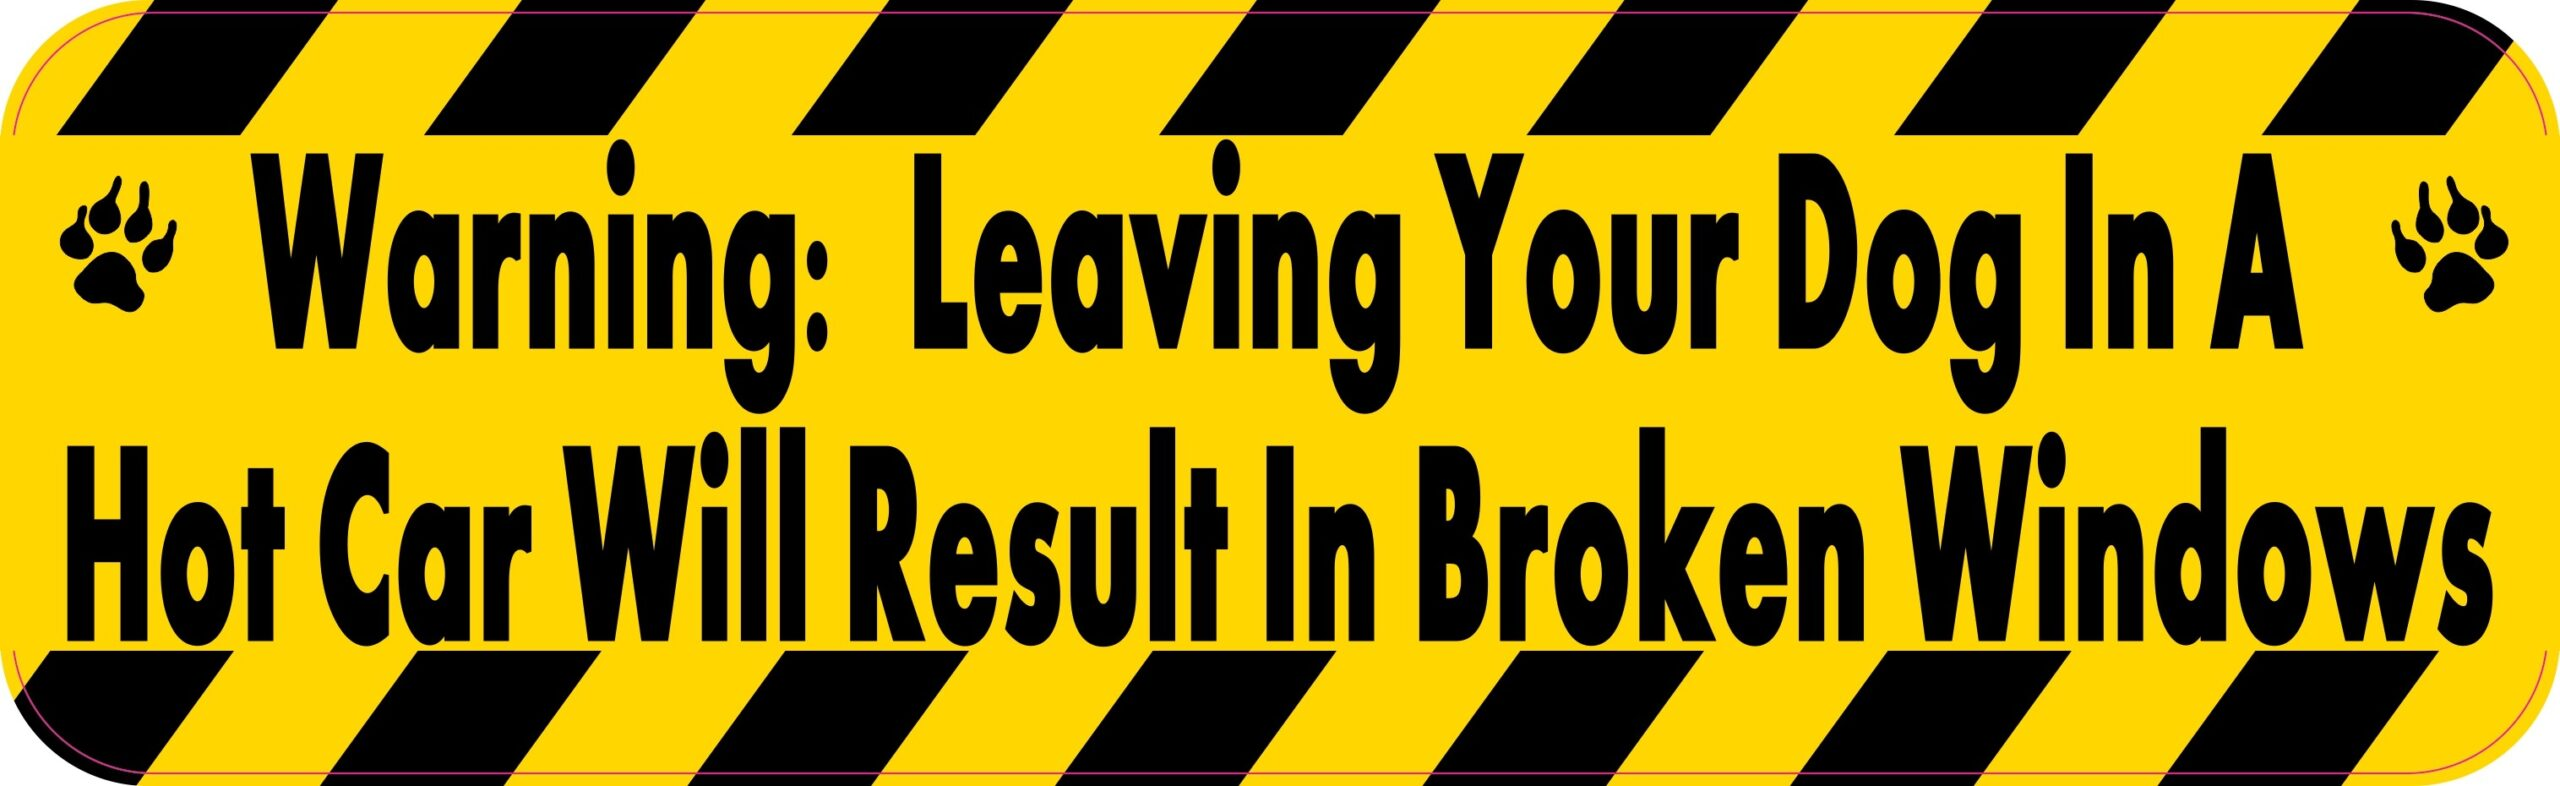 10in x 3in warning leaving your dog stickers bumper sticker decal car decals